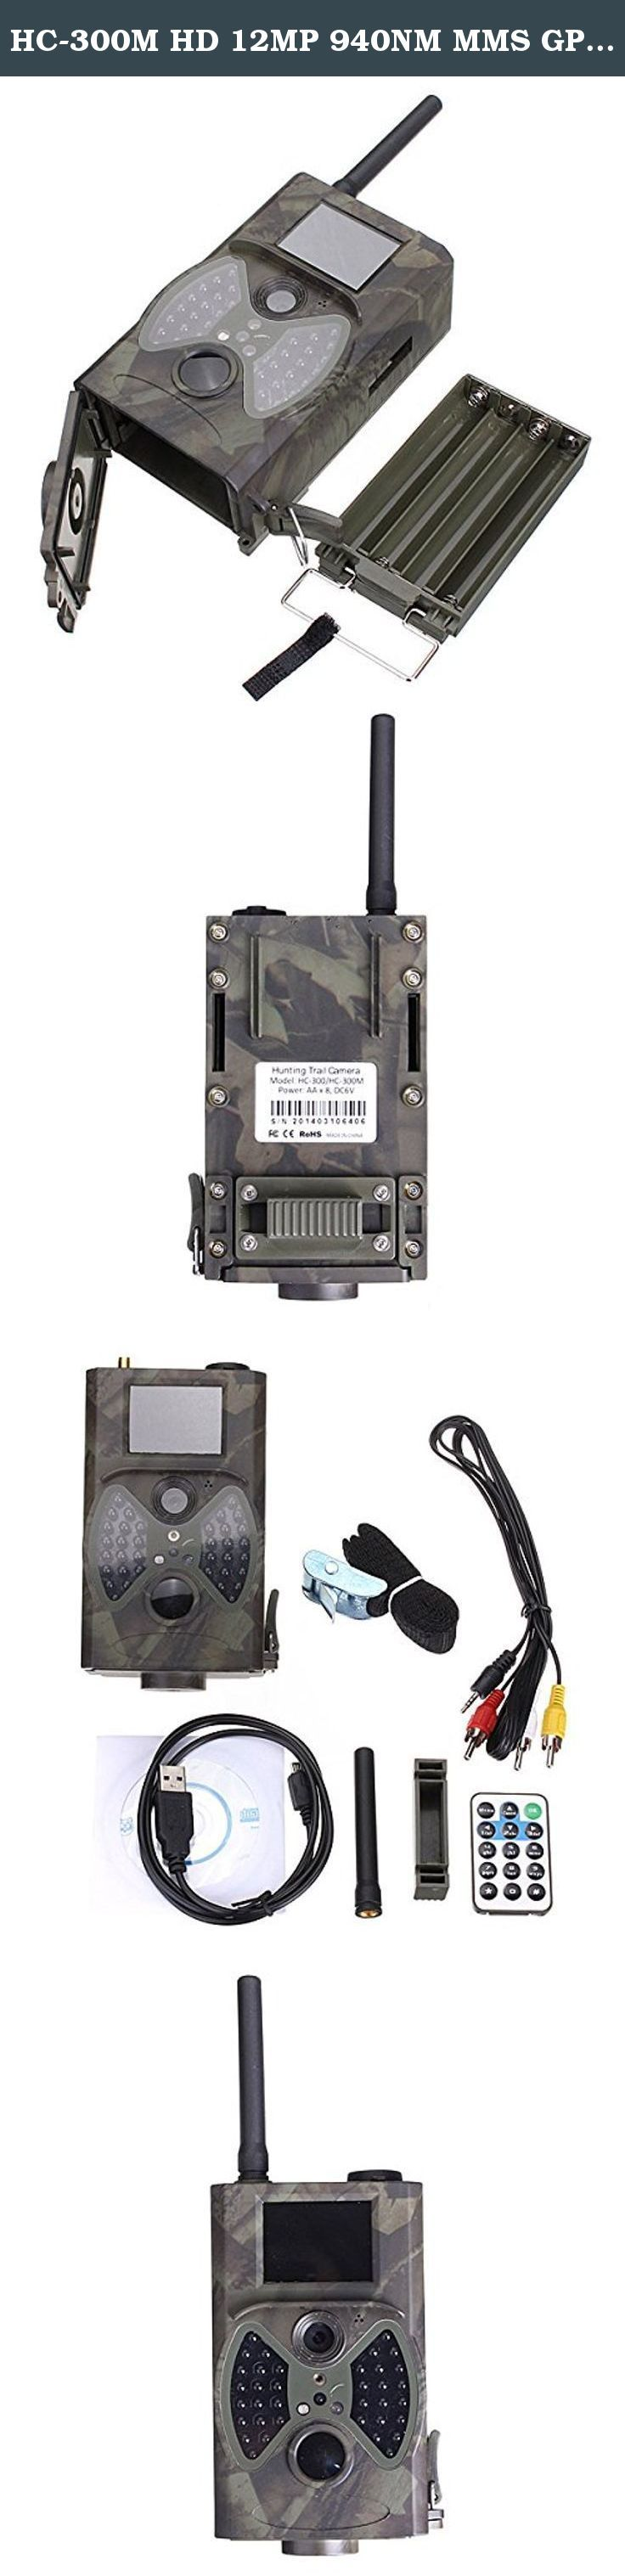 HC-300M HD 12MP 940NM MMS GPRS Scouting Infrared Trail Hunting Camera. HC-300M HD 12MP 940NM MMS GPRS Scouting Infrared Trail Hunting Camera.